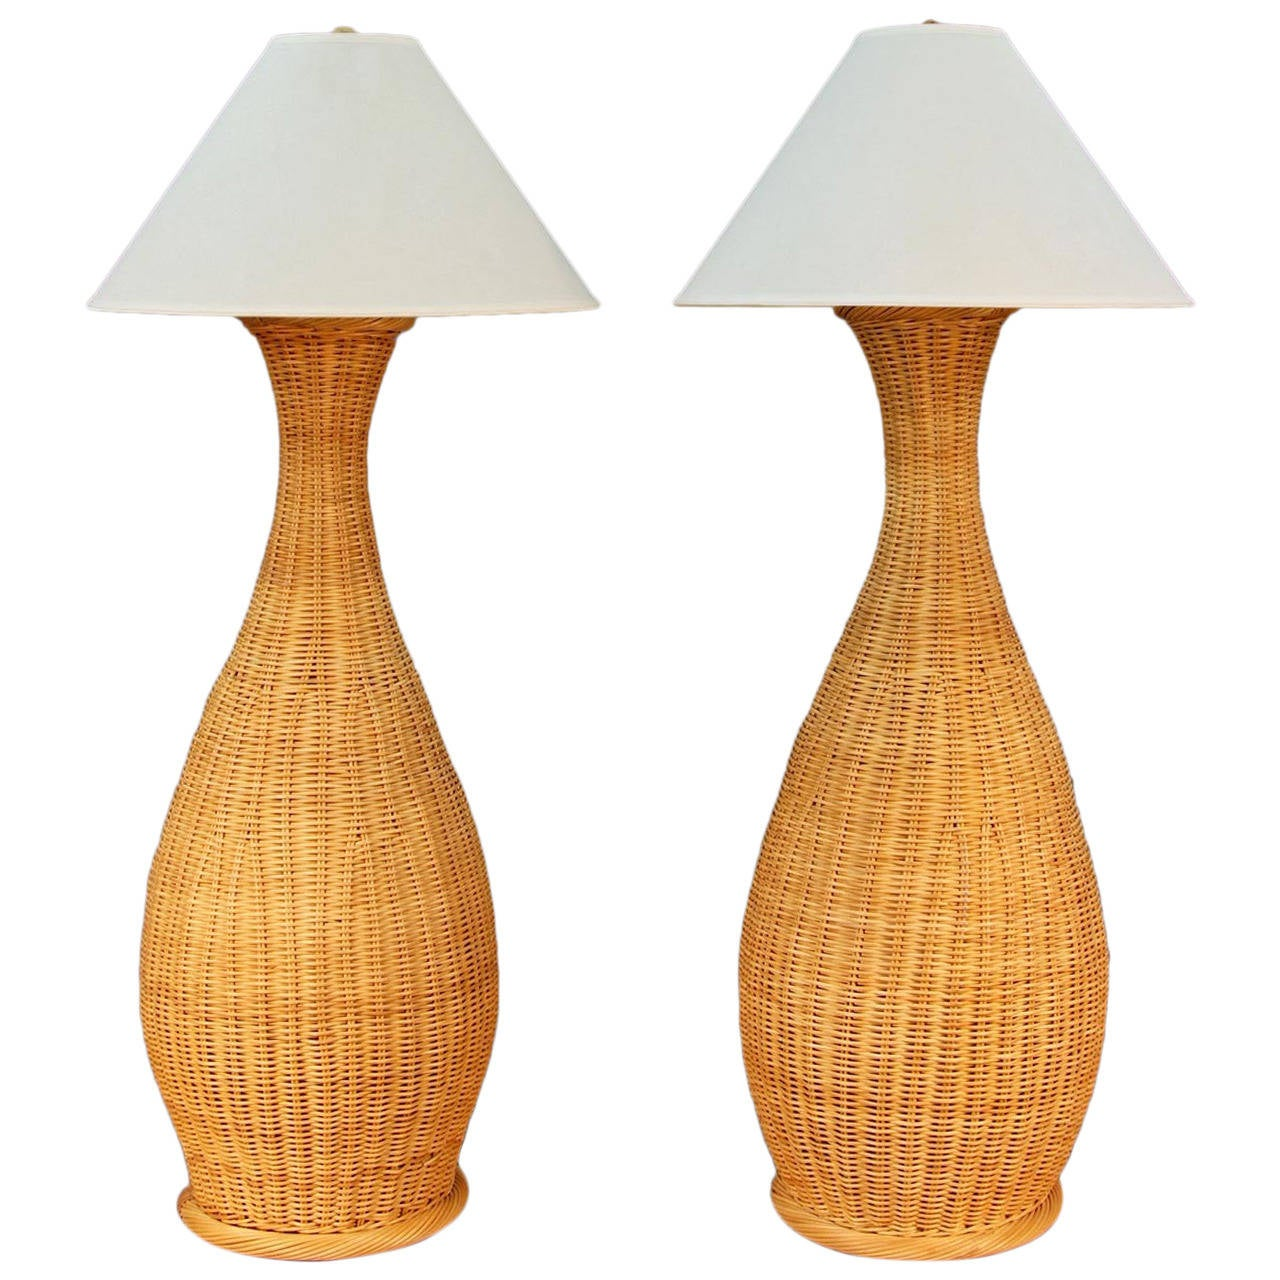 Wicker floor lamps for sale